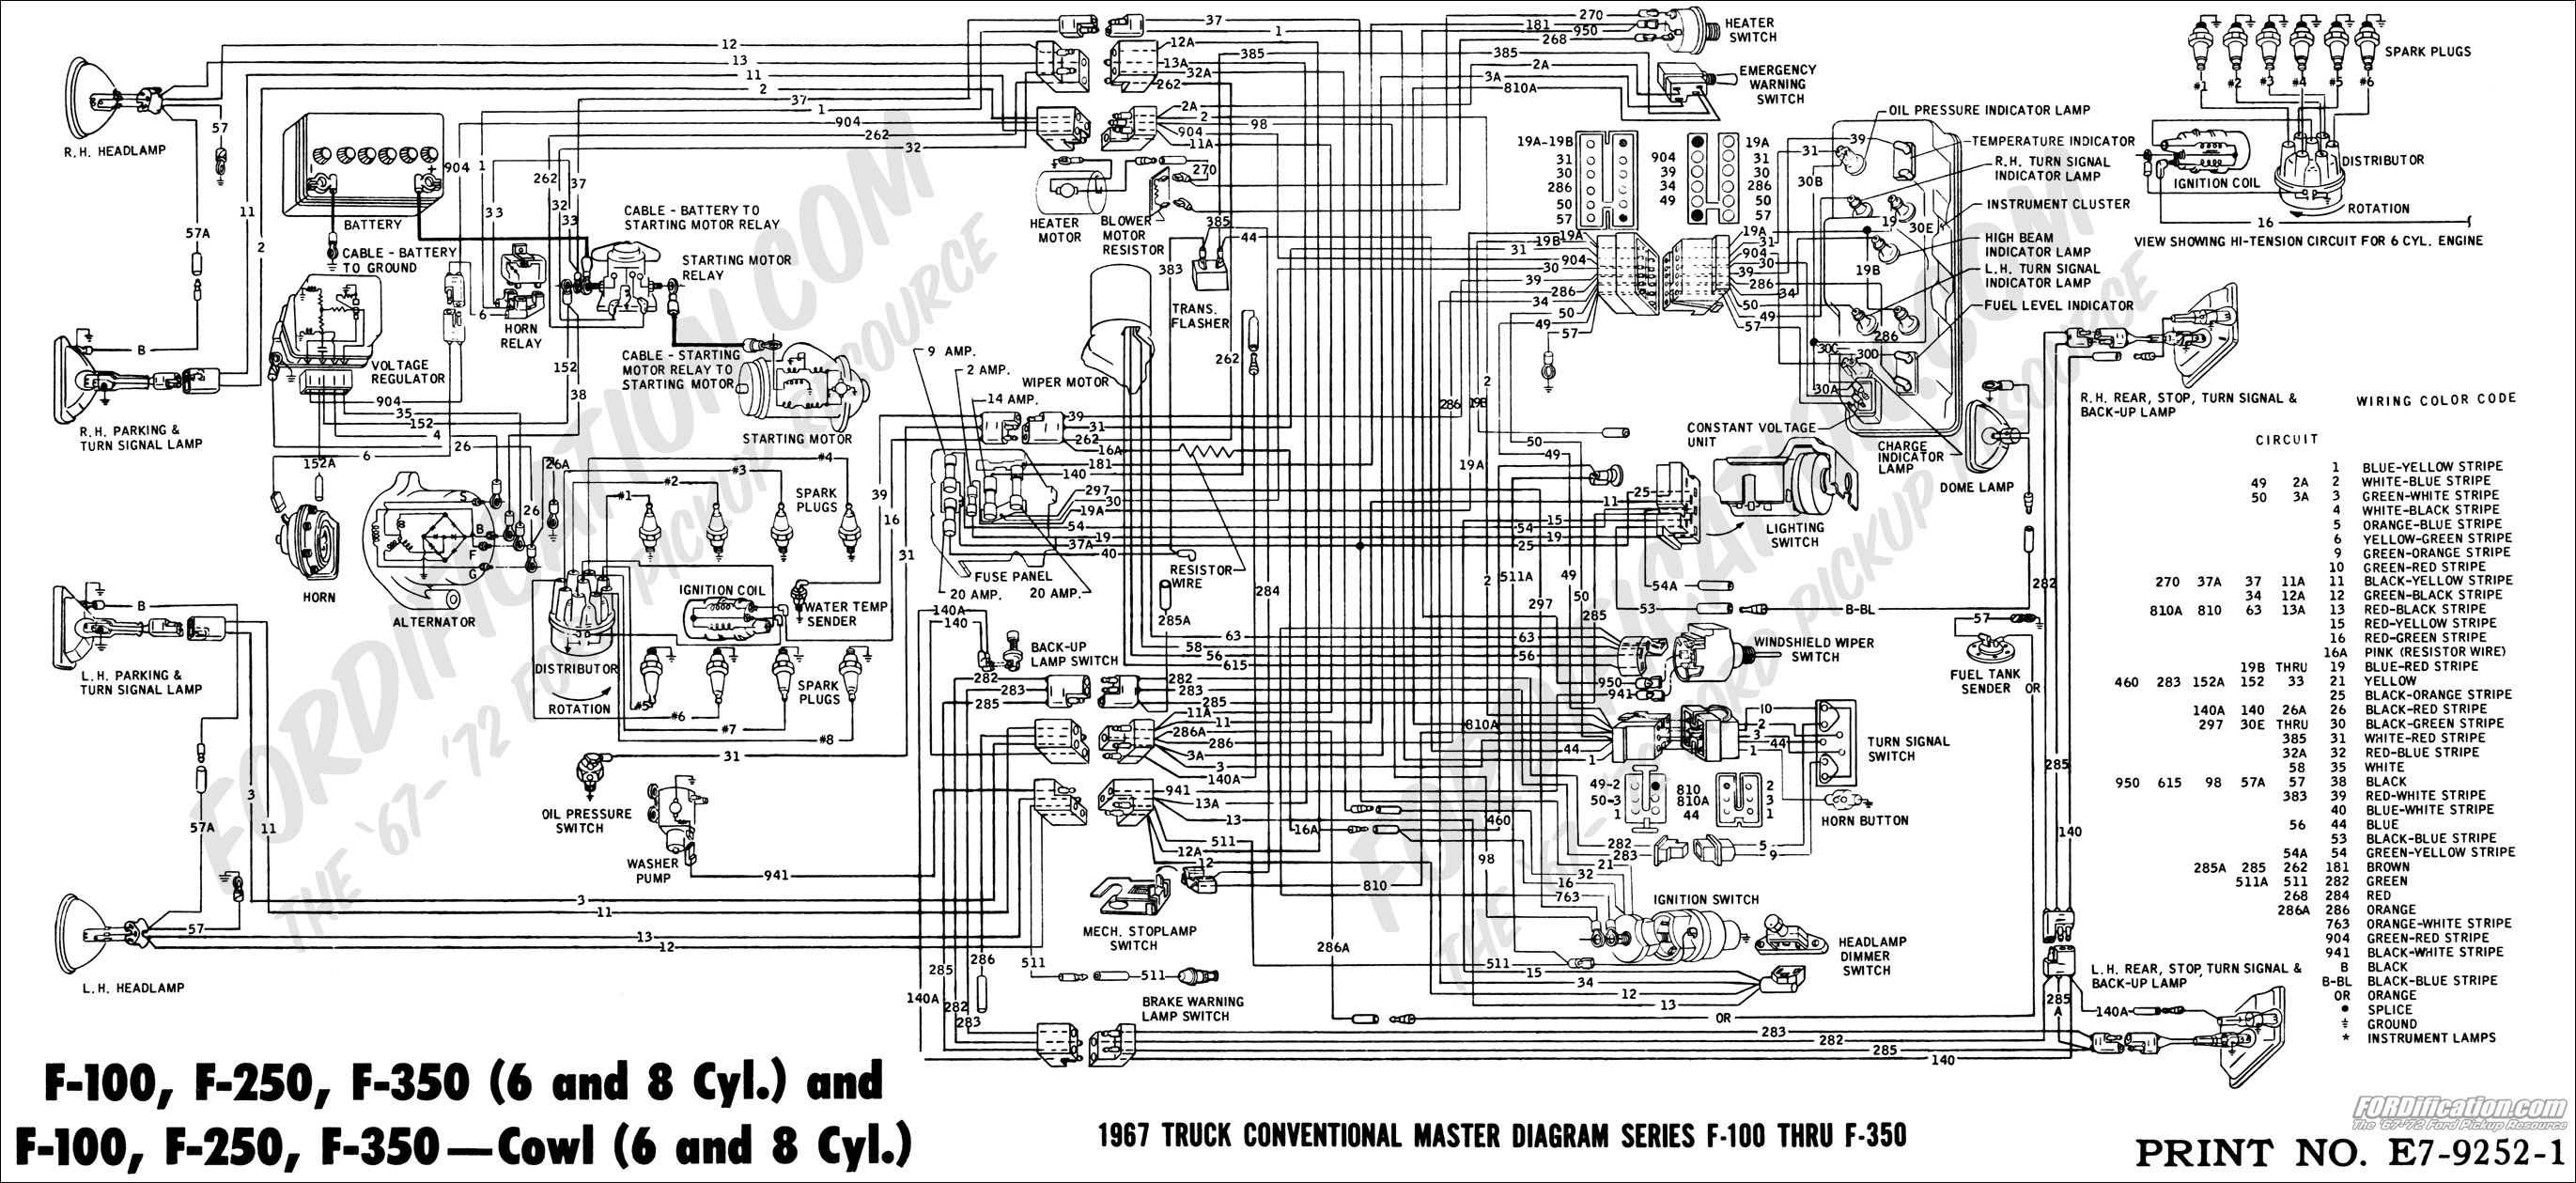 1996 f150 headlight wiring schematic 6 30 kenmo lp de \u2022